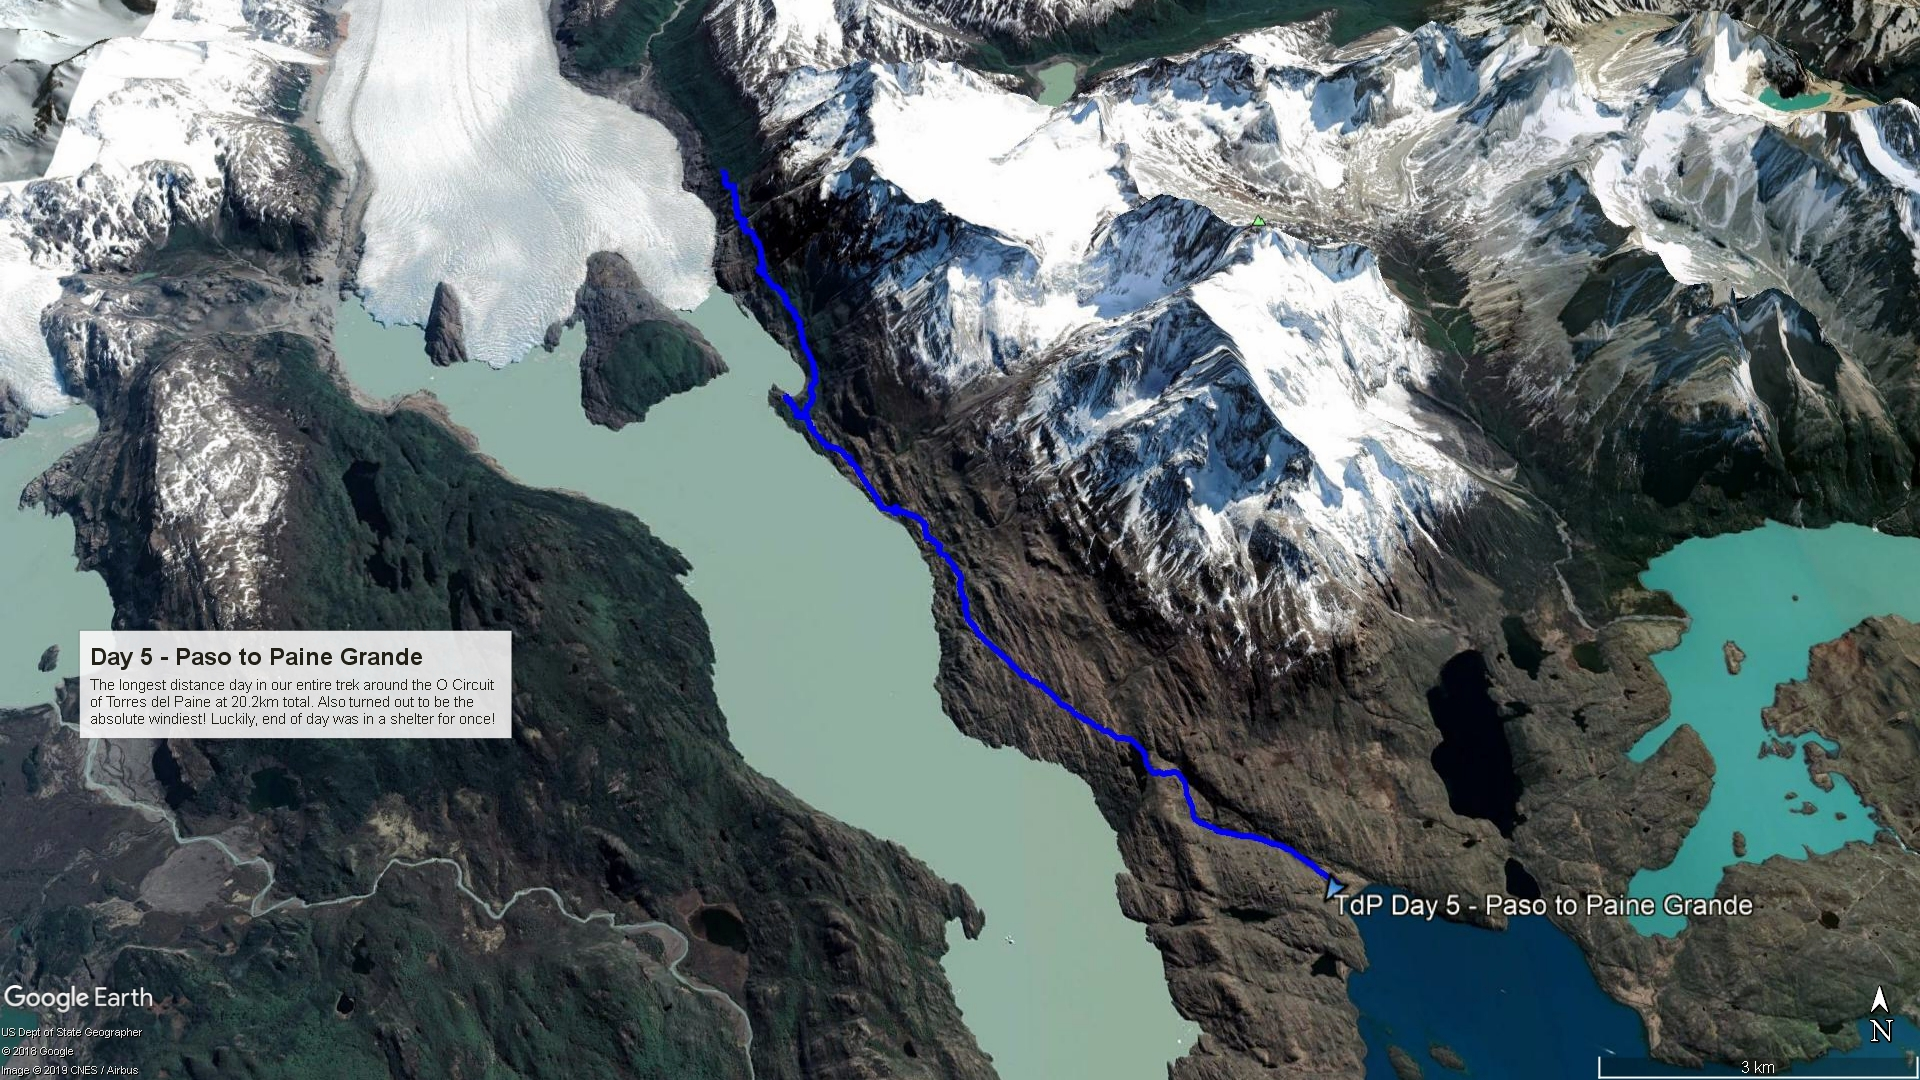 Day 5 Route